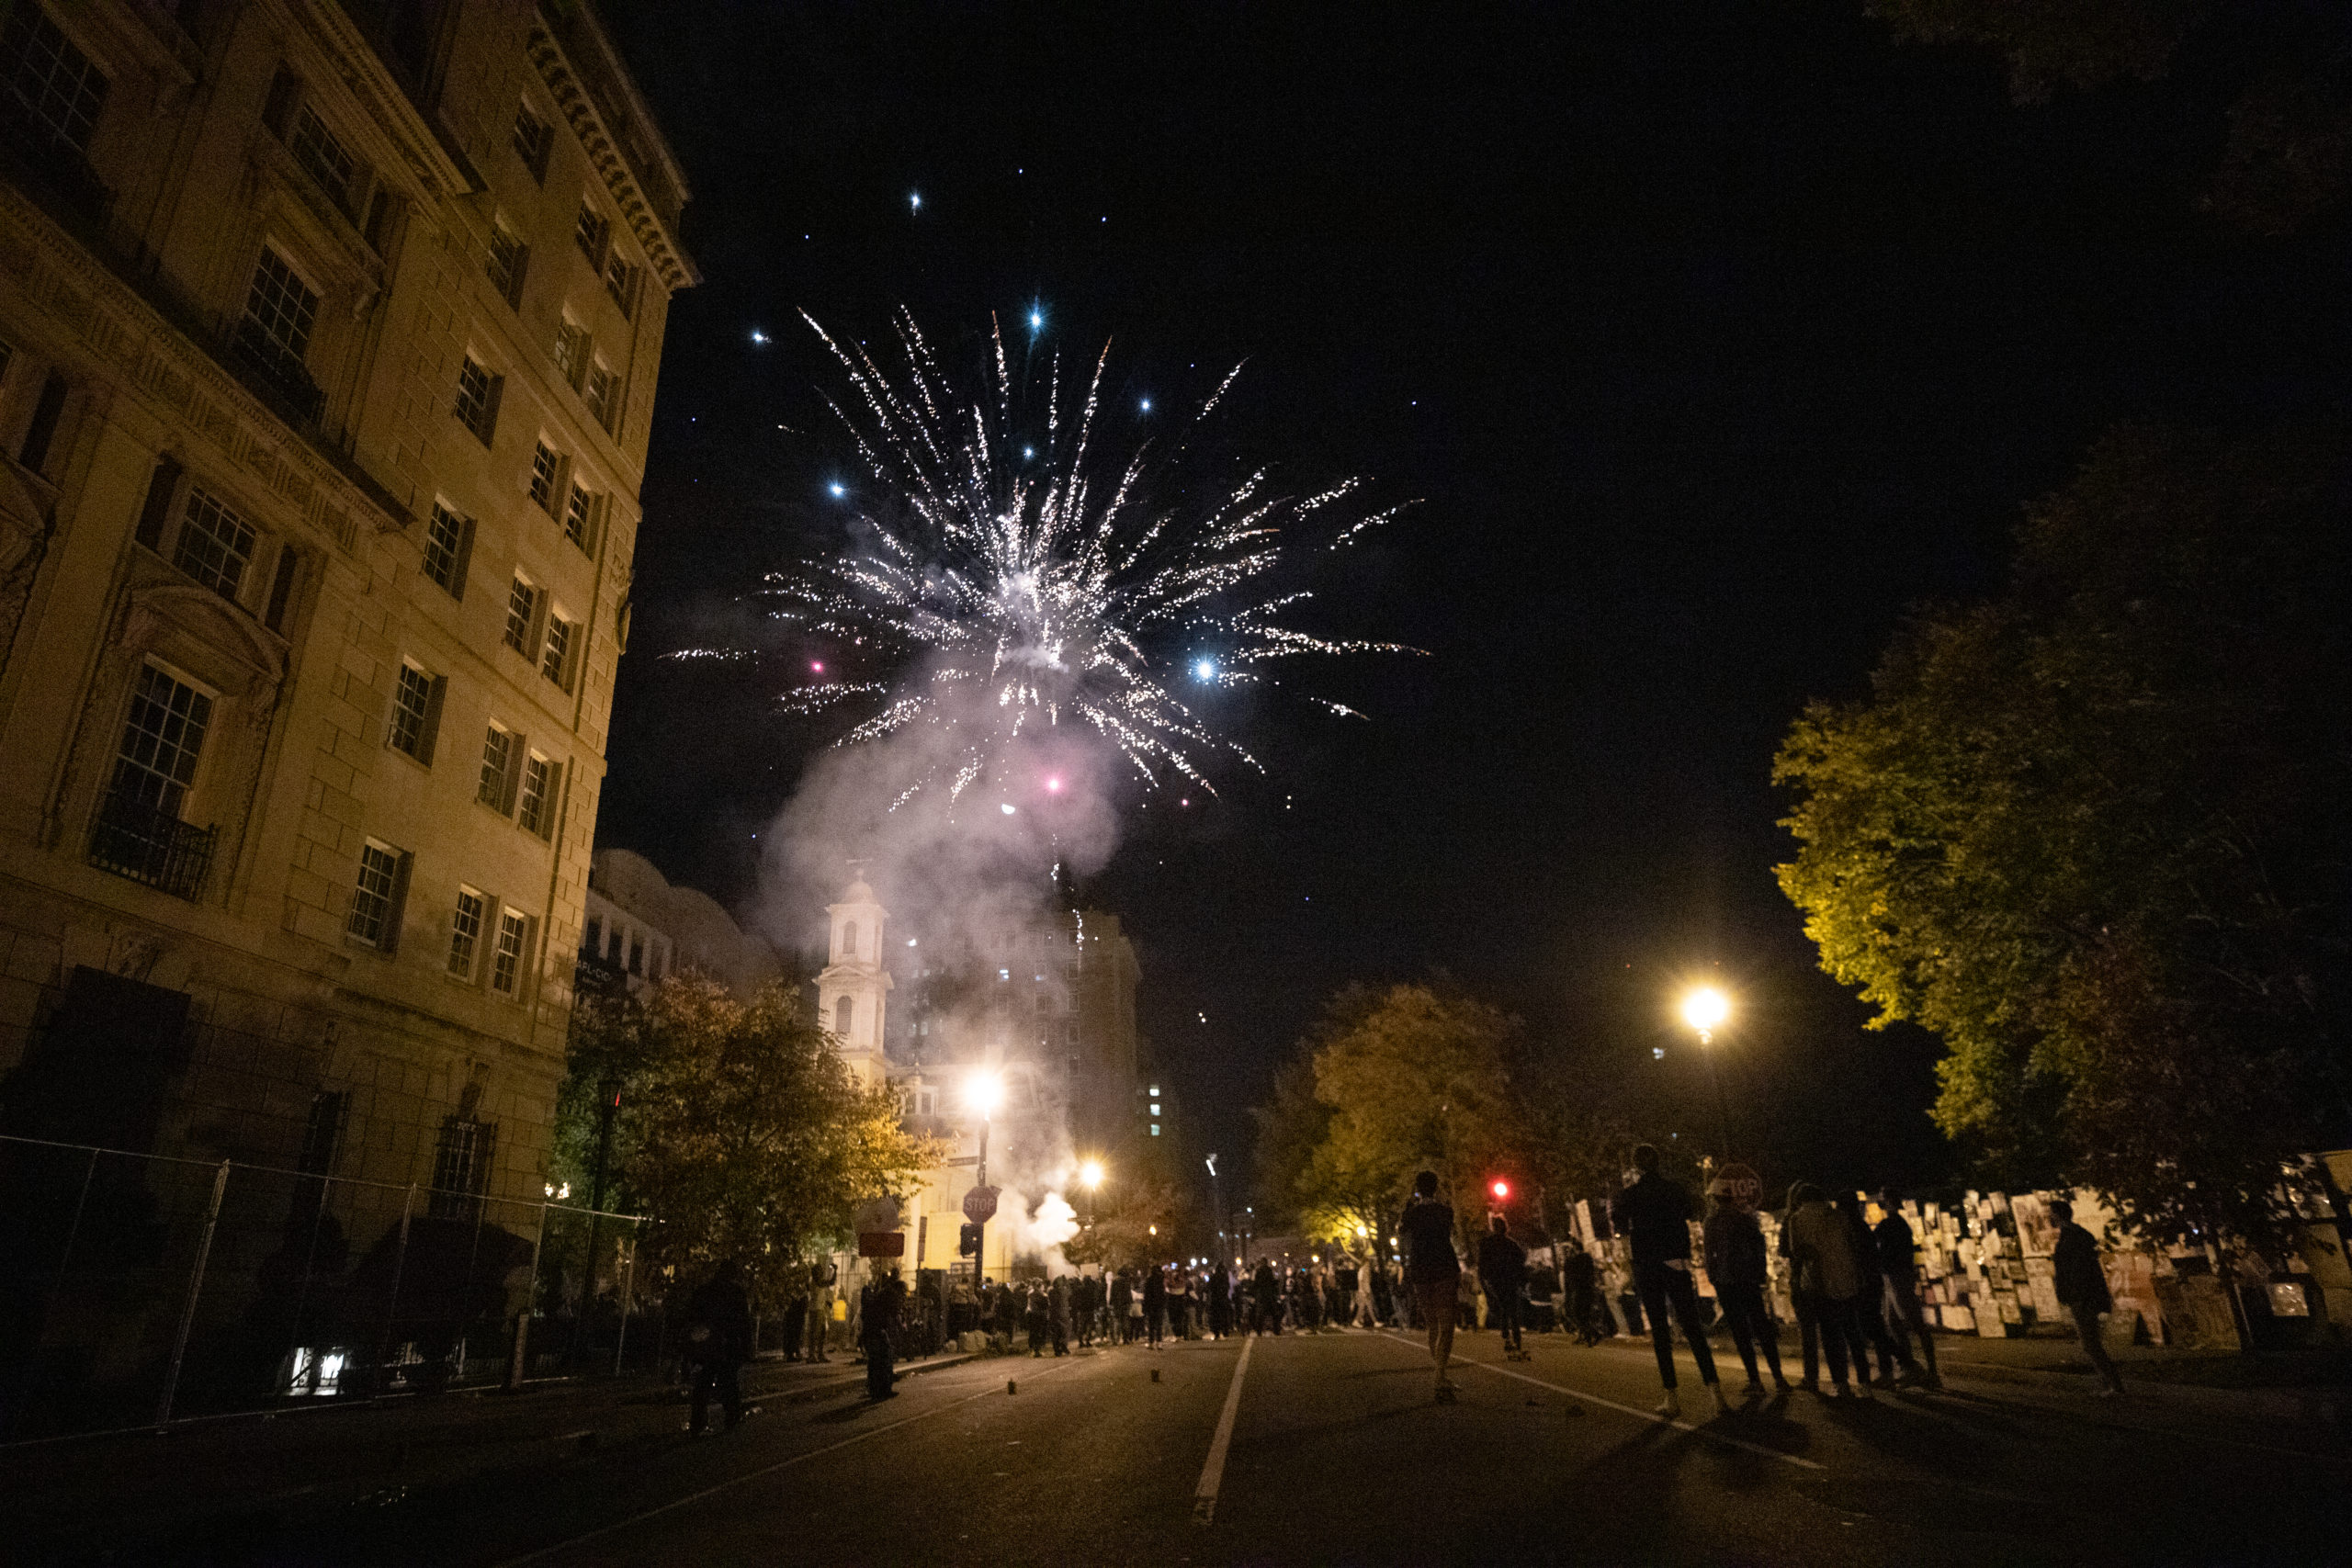 Several fireworks were set off at Black Lives Matter Plaza early Sunday morning in celebration of the predicted election of Democratic nominee Joe Biden and Kamala Harris, in Washington D.C. on Nov. 8, 2020. (Kaylee Greenlee - Daily Caller News Foundation)